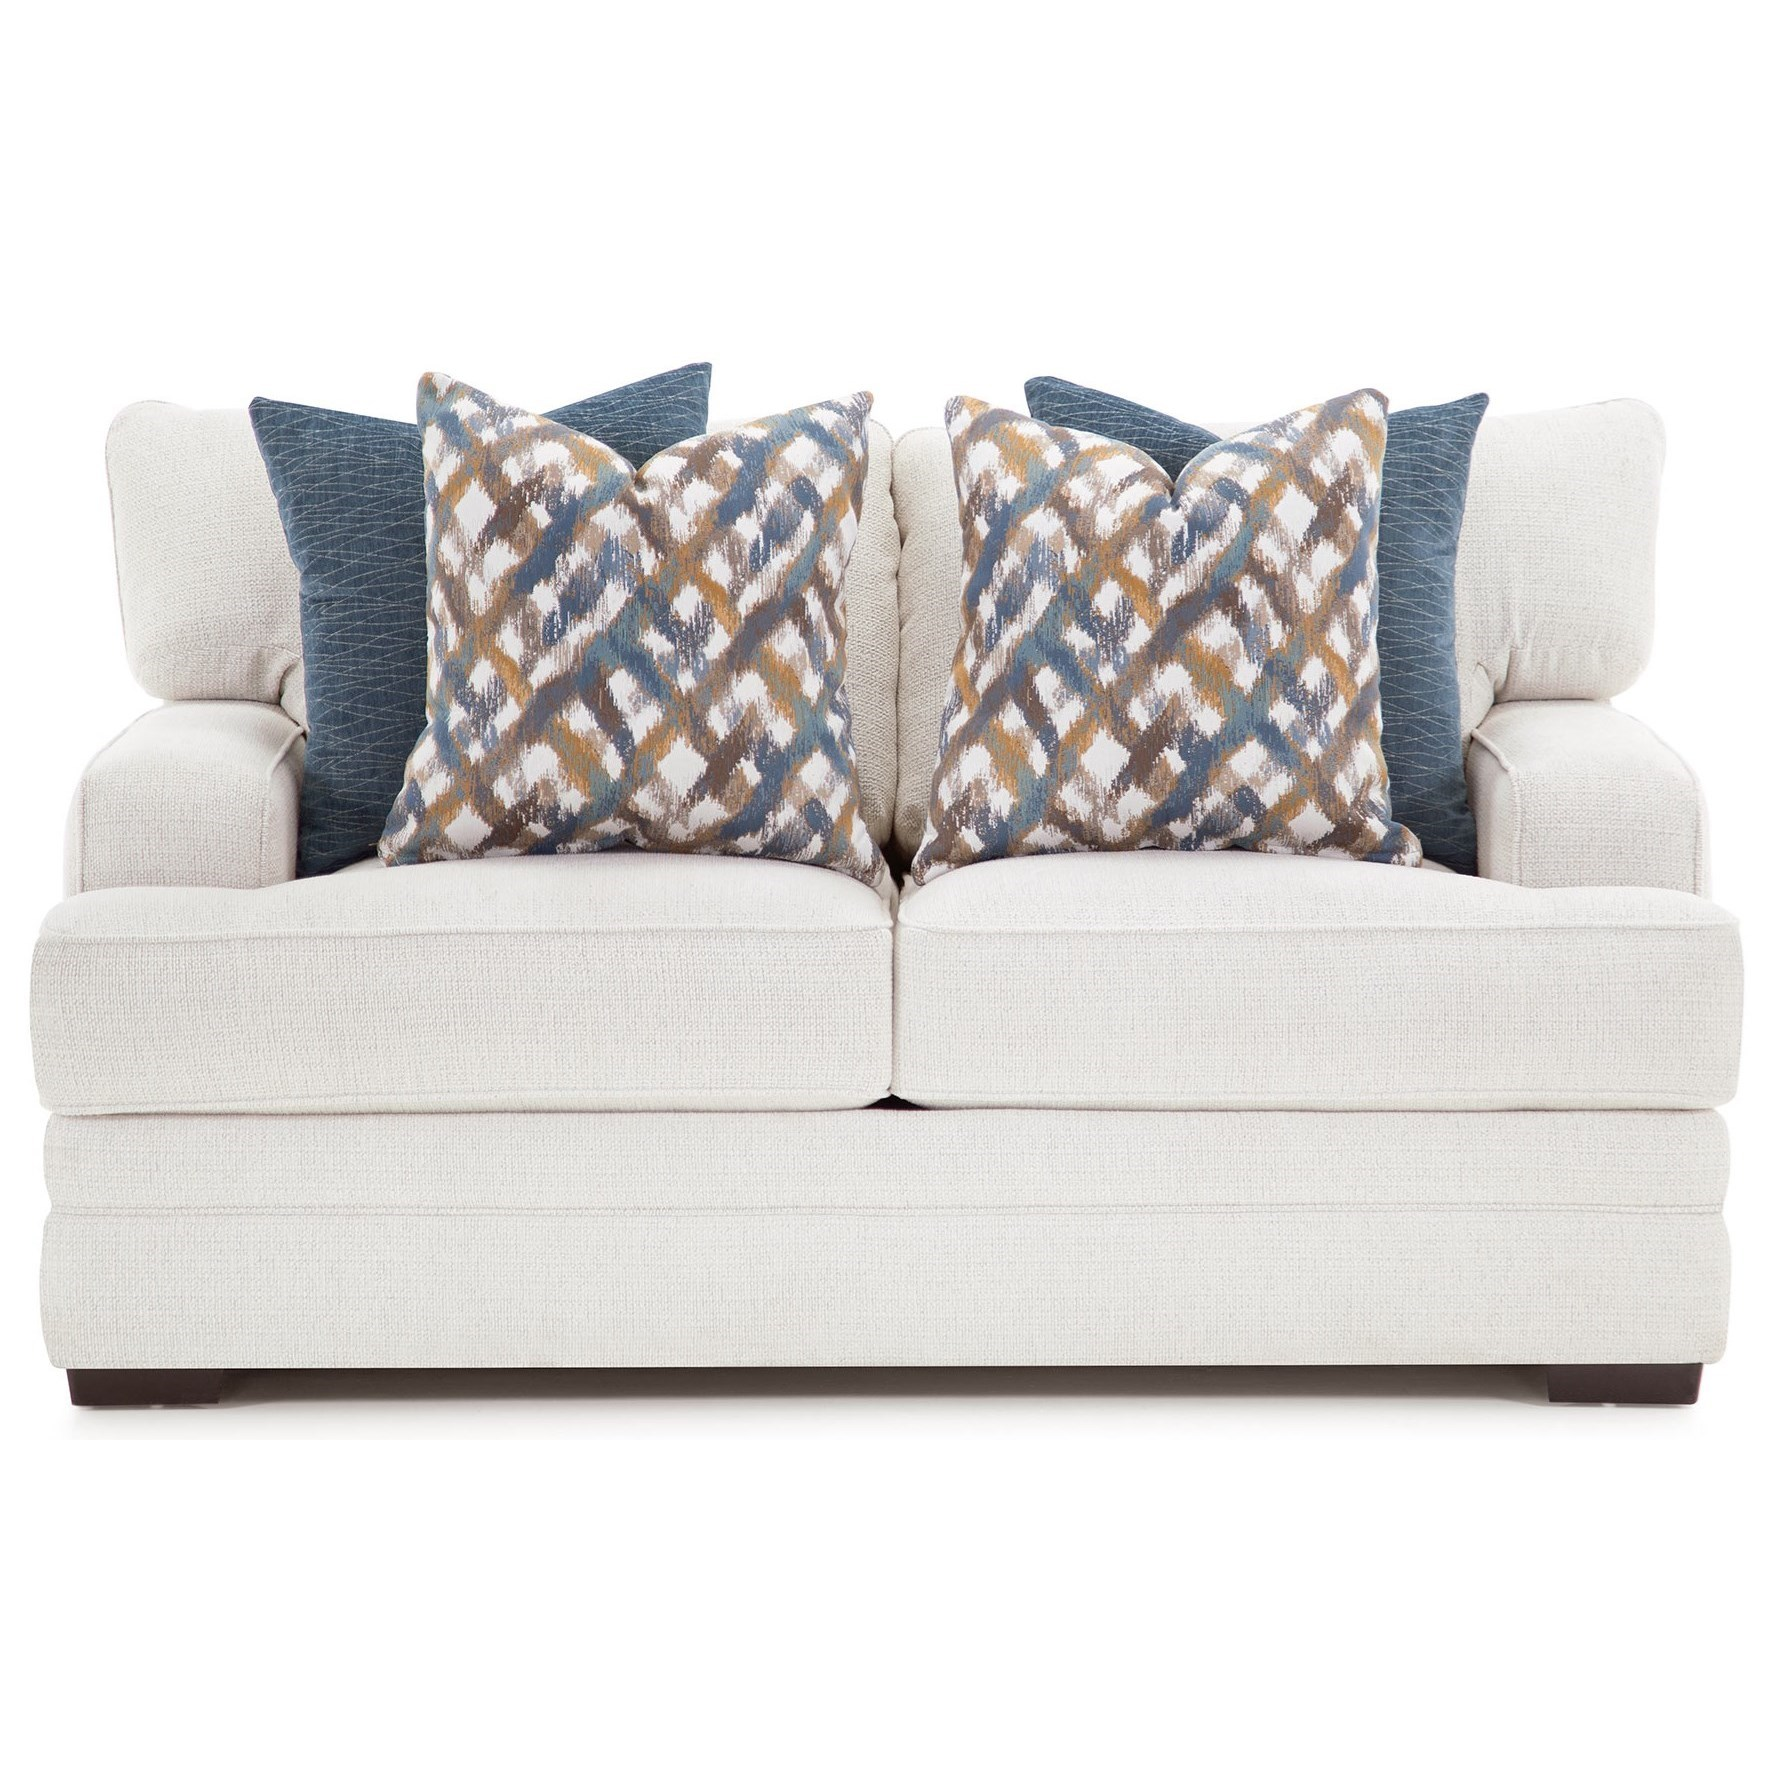 953 Loveseat by Franklin at Wilcox Furniture